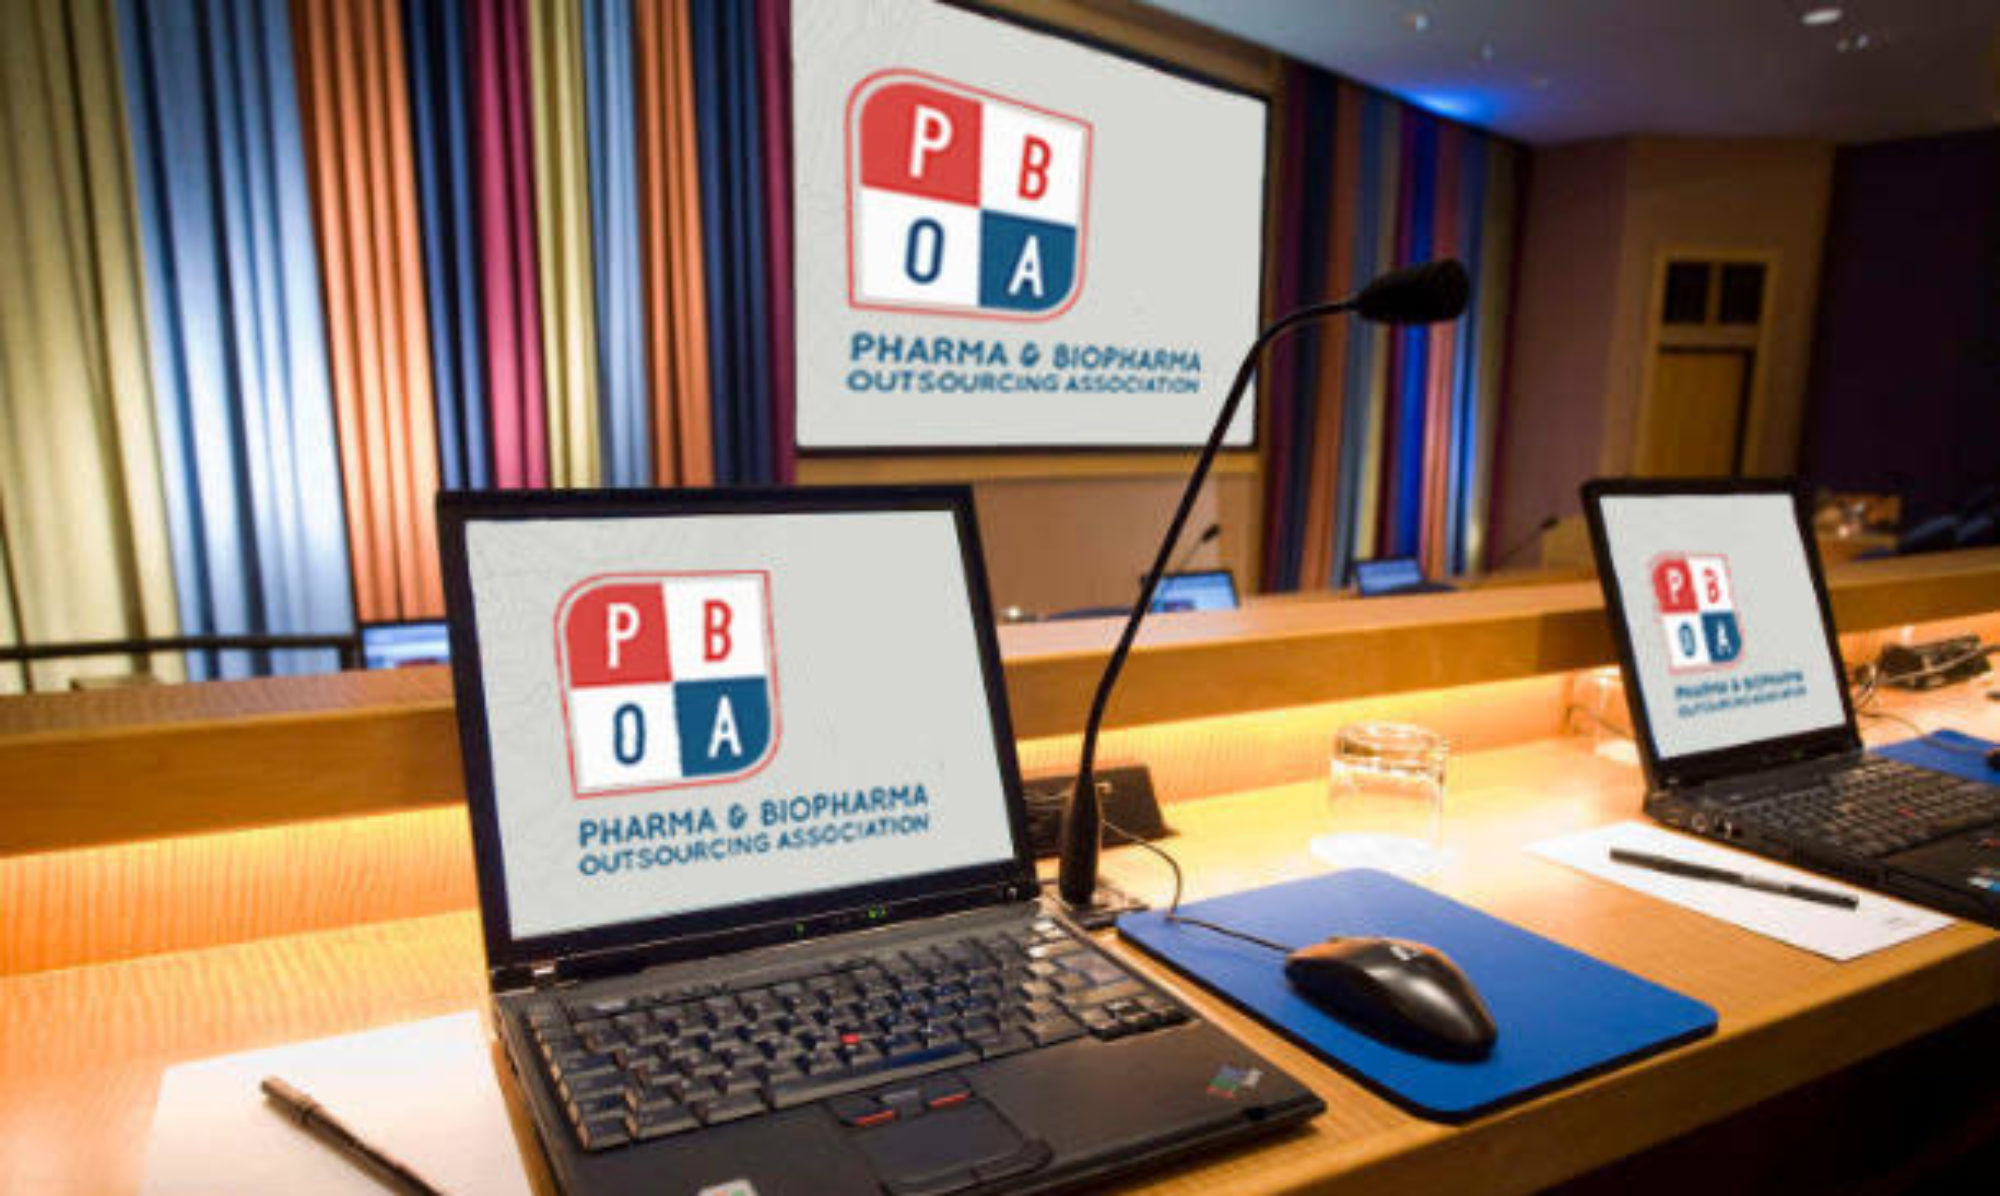 PBOA Annual Meeting & Conference